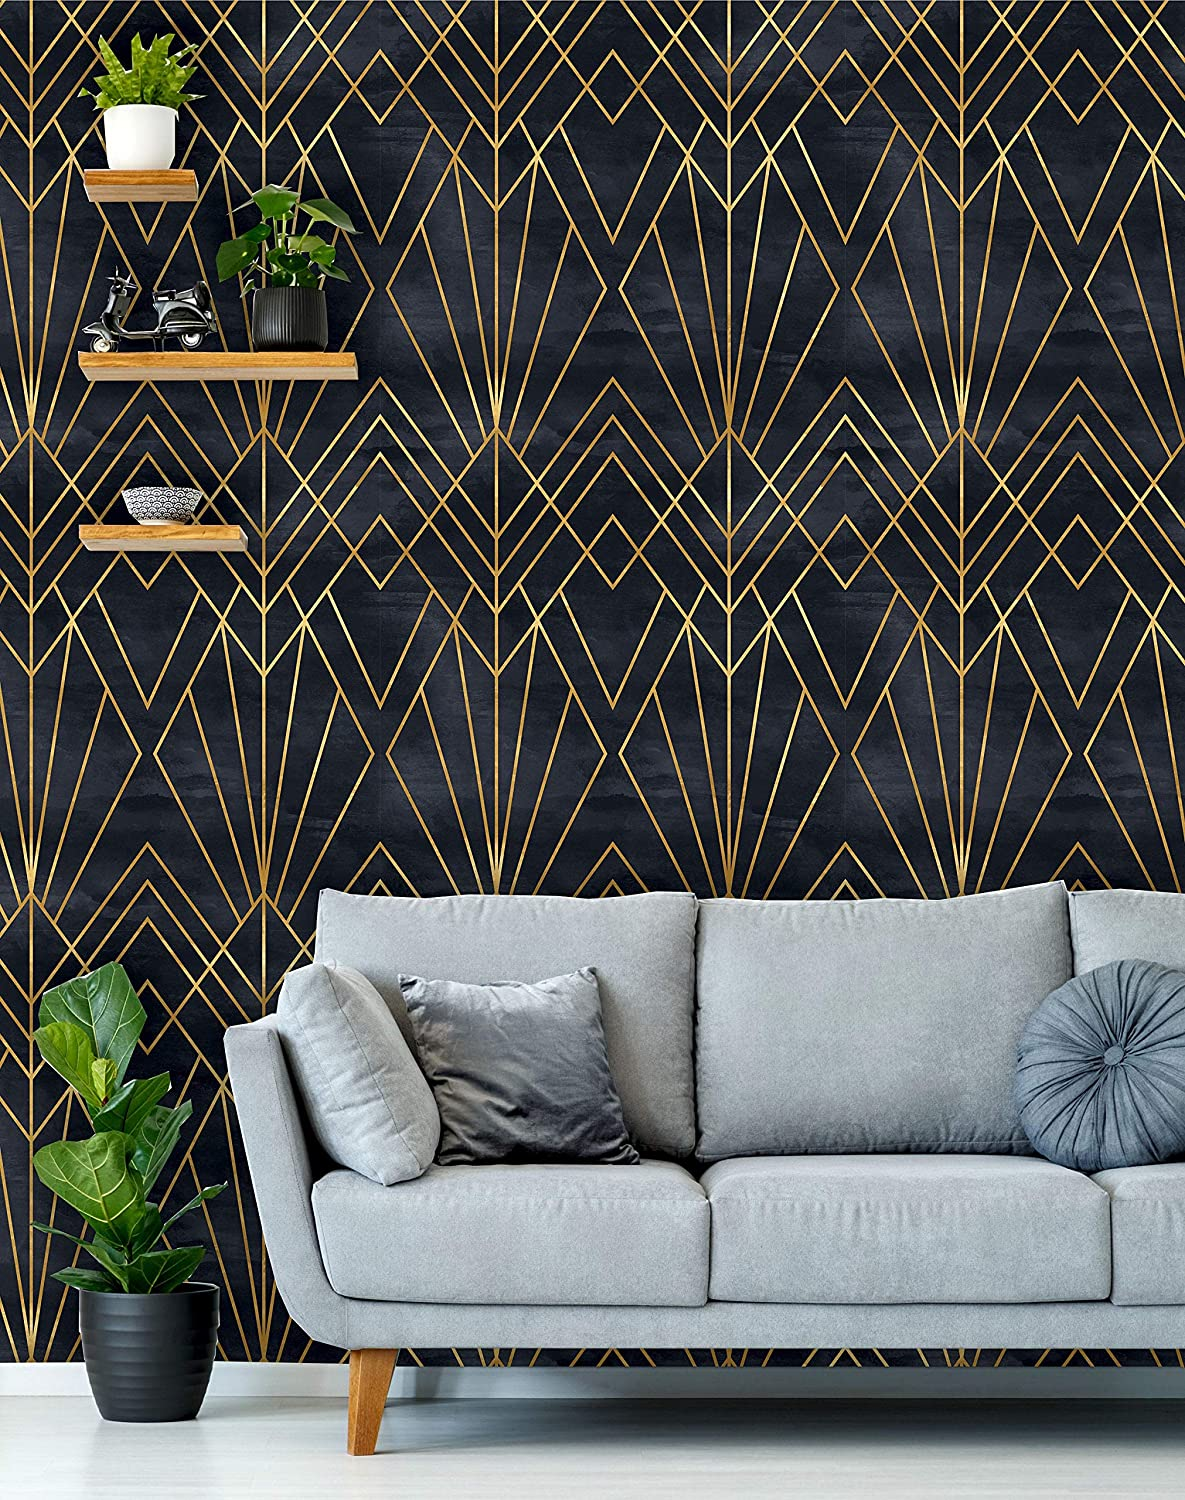 removable peel n stick wallpaper self adhesive wall mural geometric black gold pattern watercolor black background art deco 24 w x 120 h inches amazon com removable peel n stick wallpaper self adhesive wall mural geometric black gold pattern watercolor black background art deco 24 w x 120 h